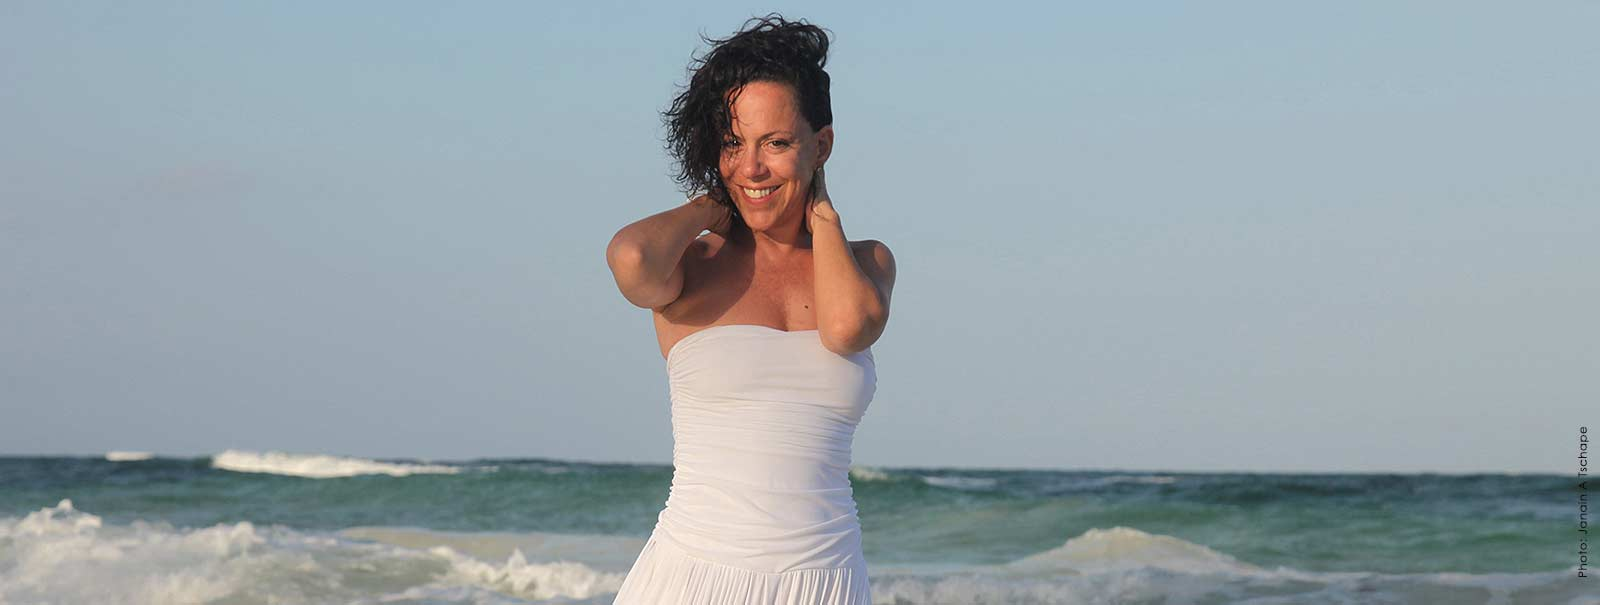 More Info - Bebel Gilberto